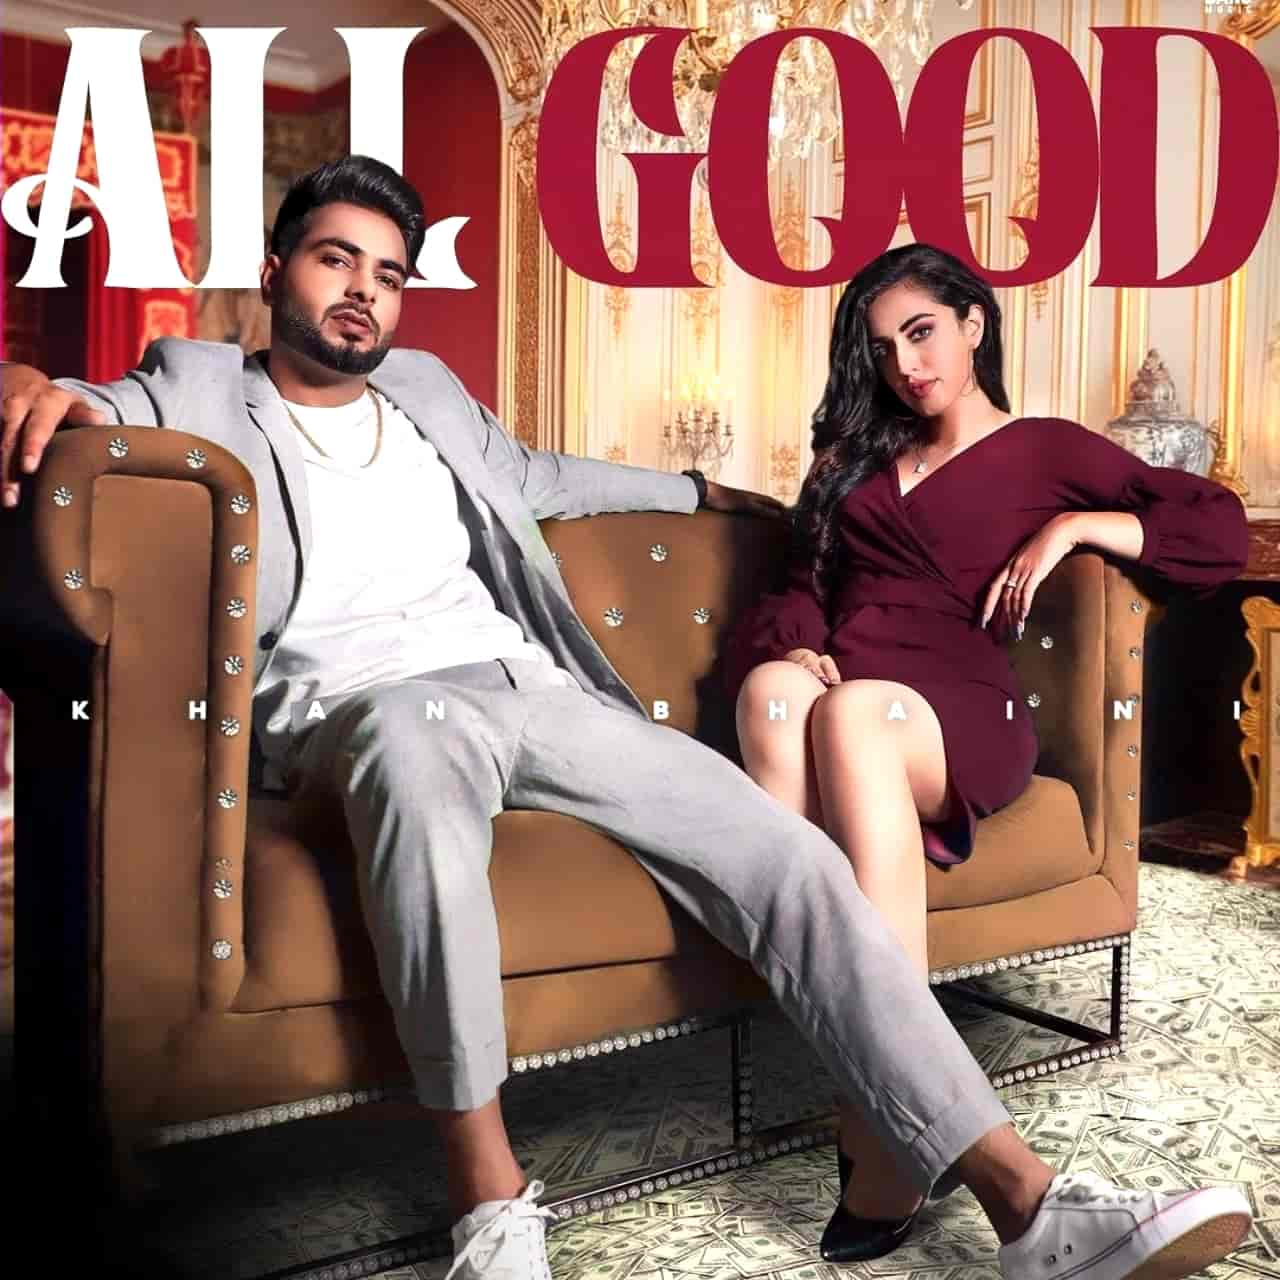 All Good Punjabi Song Image Khan Bhaini Features Samreen Kaur